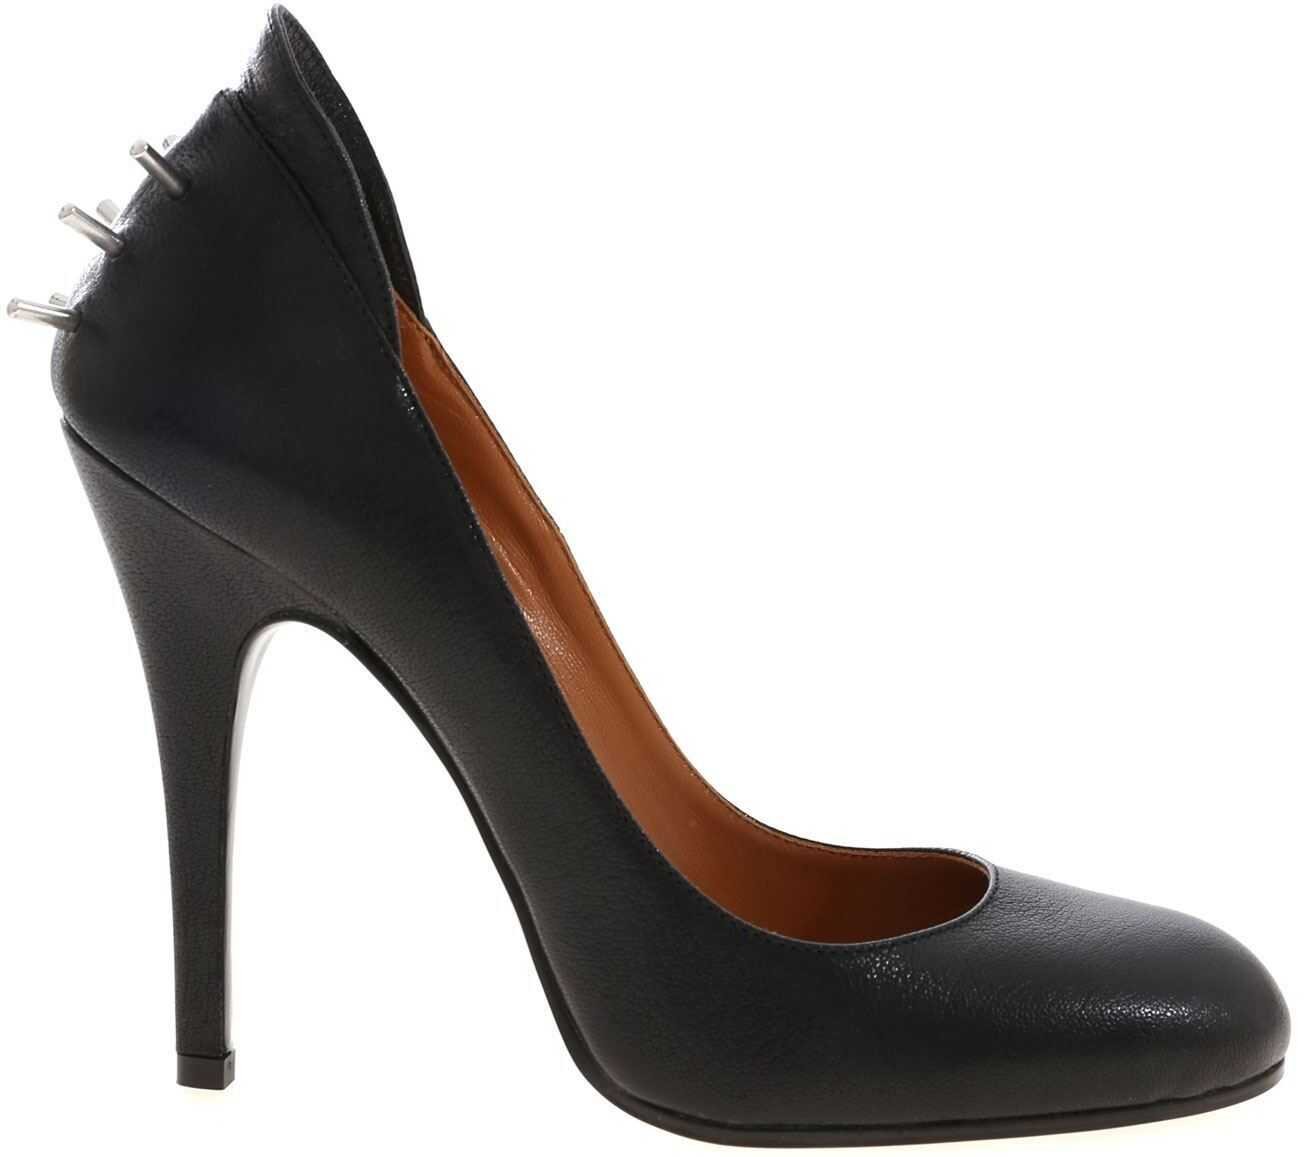 Vivienne Westwood Sex Court Pumps In Black Black